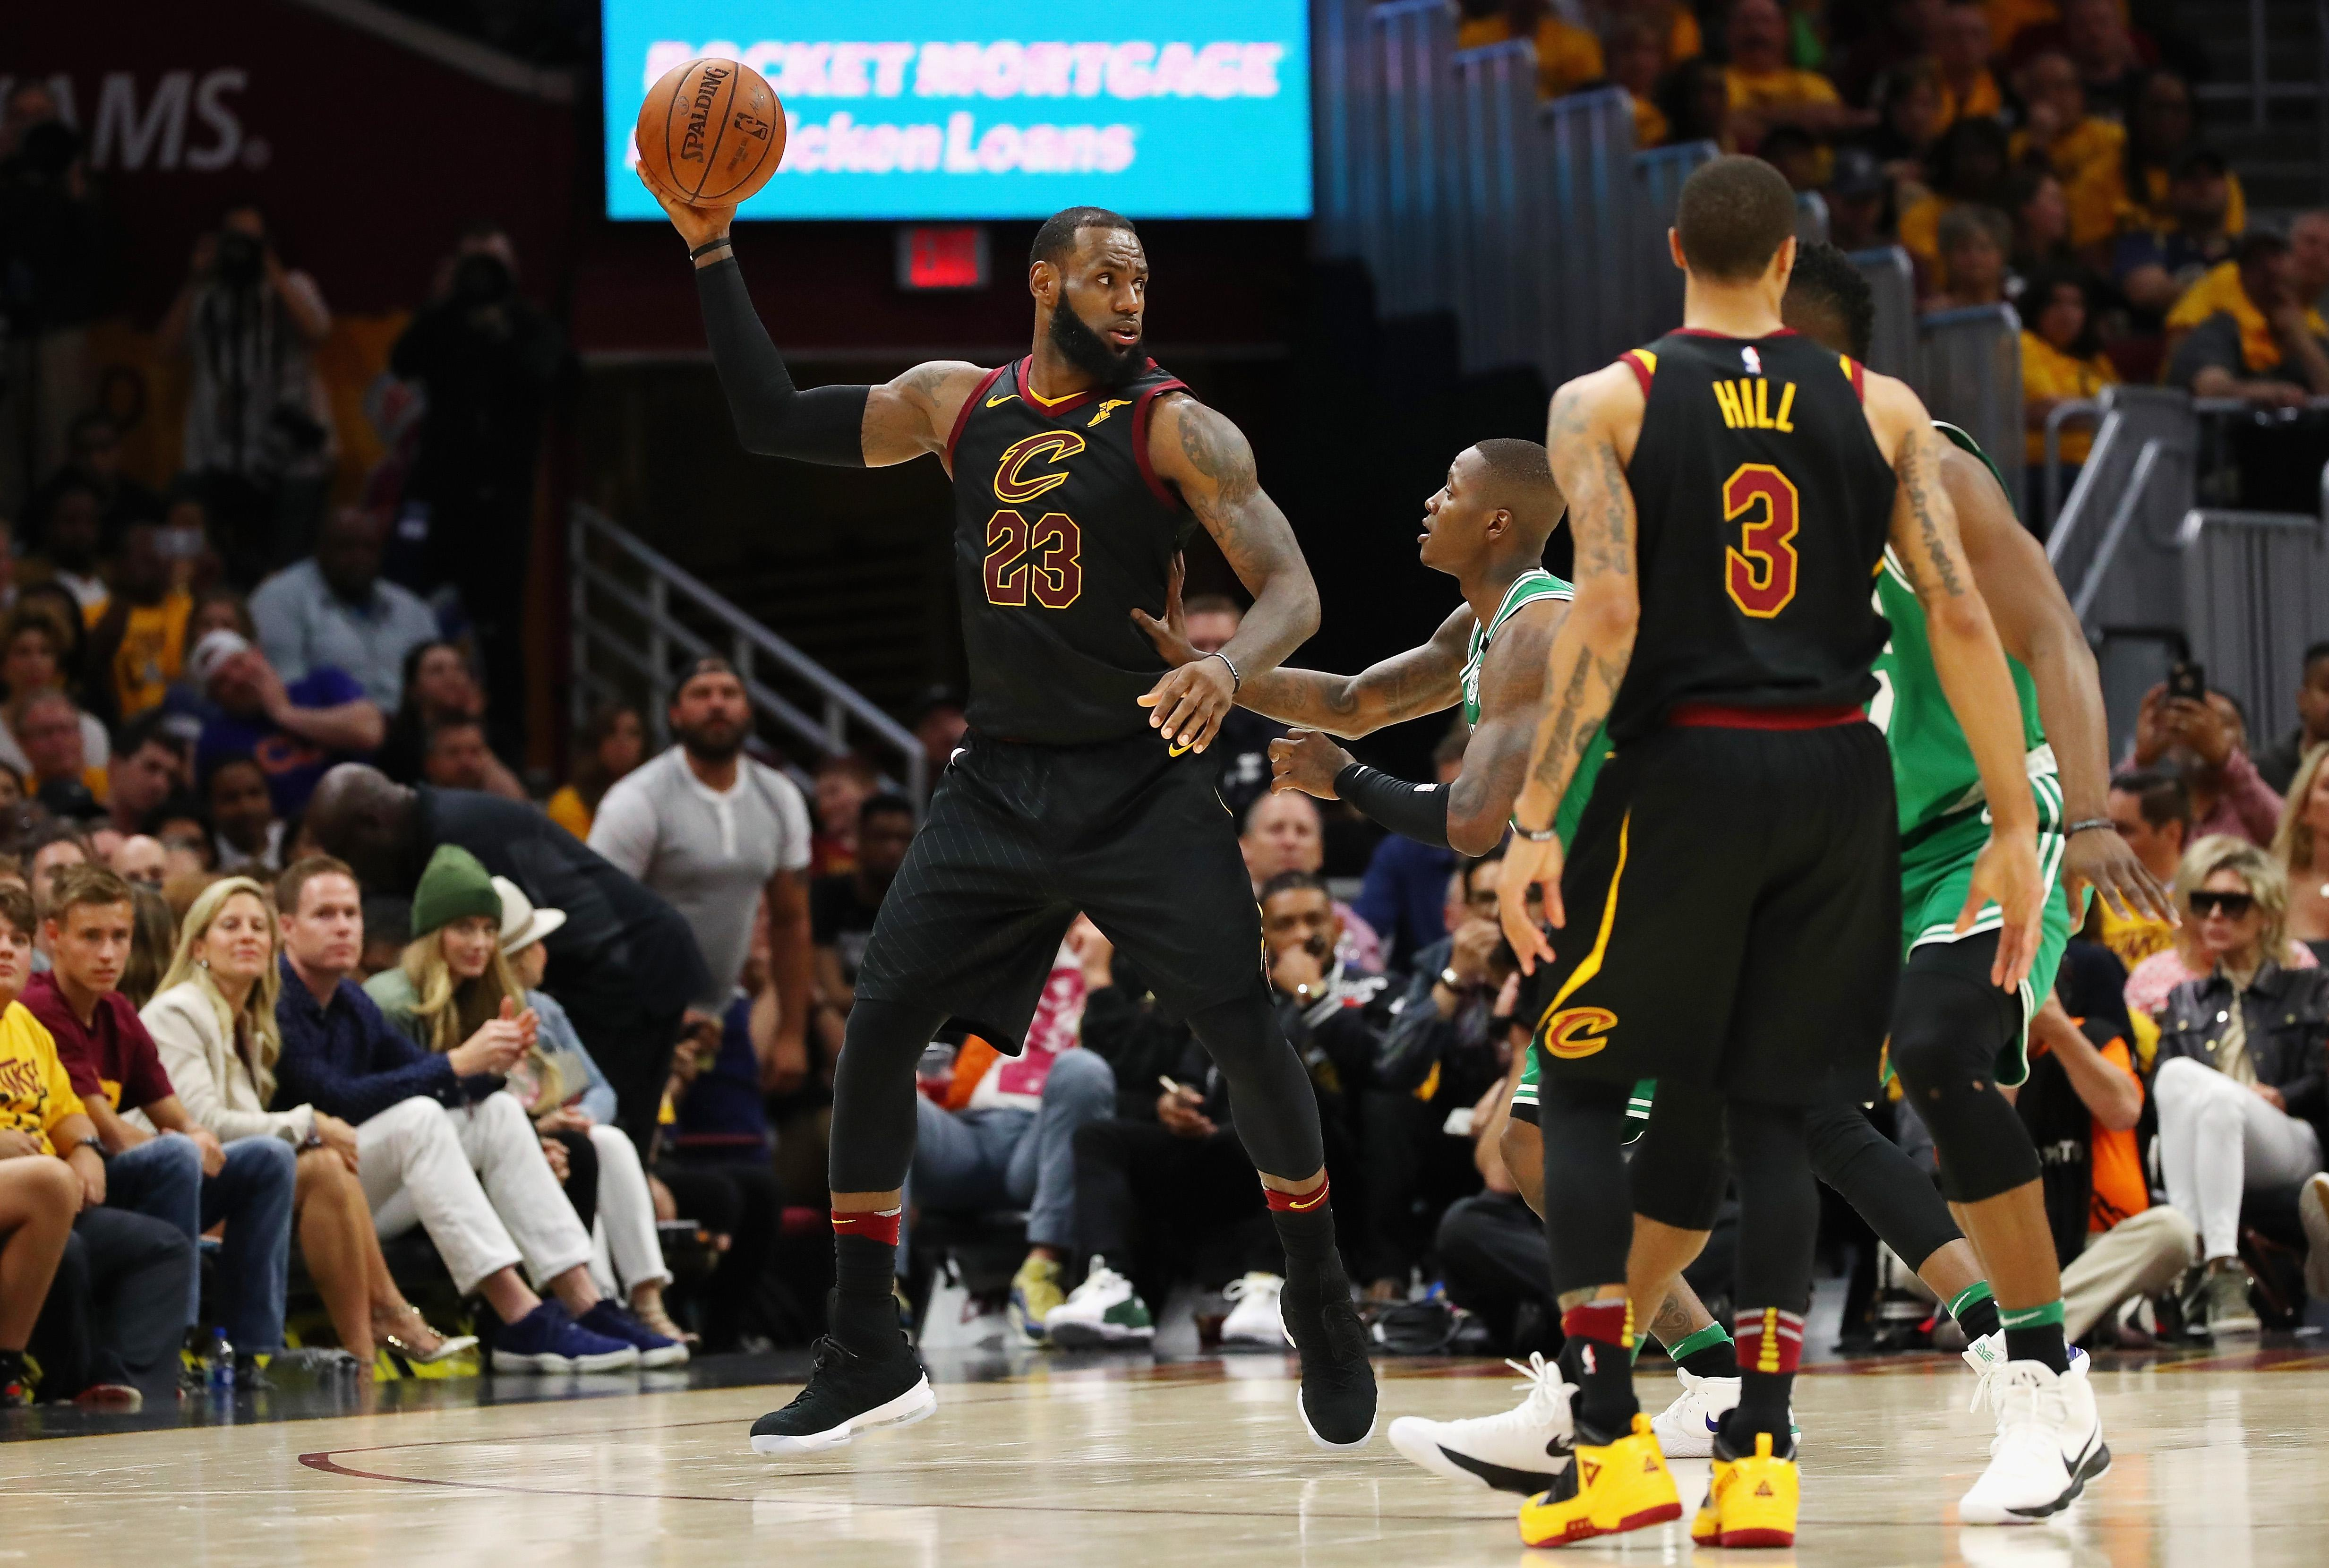 CLEVELAND, OH - MAY 19:  LeBron James #23 of the Cleveland Cavaliers handles the ball in the second half against the Boston Celtics during Game Three of the 2018 NBA Eastern Conference Finals at Quicken Loans Arena on May 19, 2018 in Cleveland, Ohio. NOTE TO USER: User expressly acknowledges and agrees that, by downloading and or using this photograph, User is consenting to the terms and conditions of the Getty Images License Agreement.  (Photo by Gregory Shamus/Getty Images)